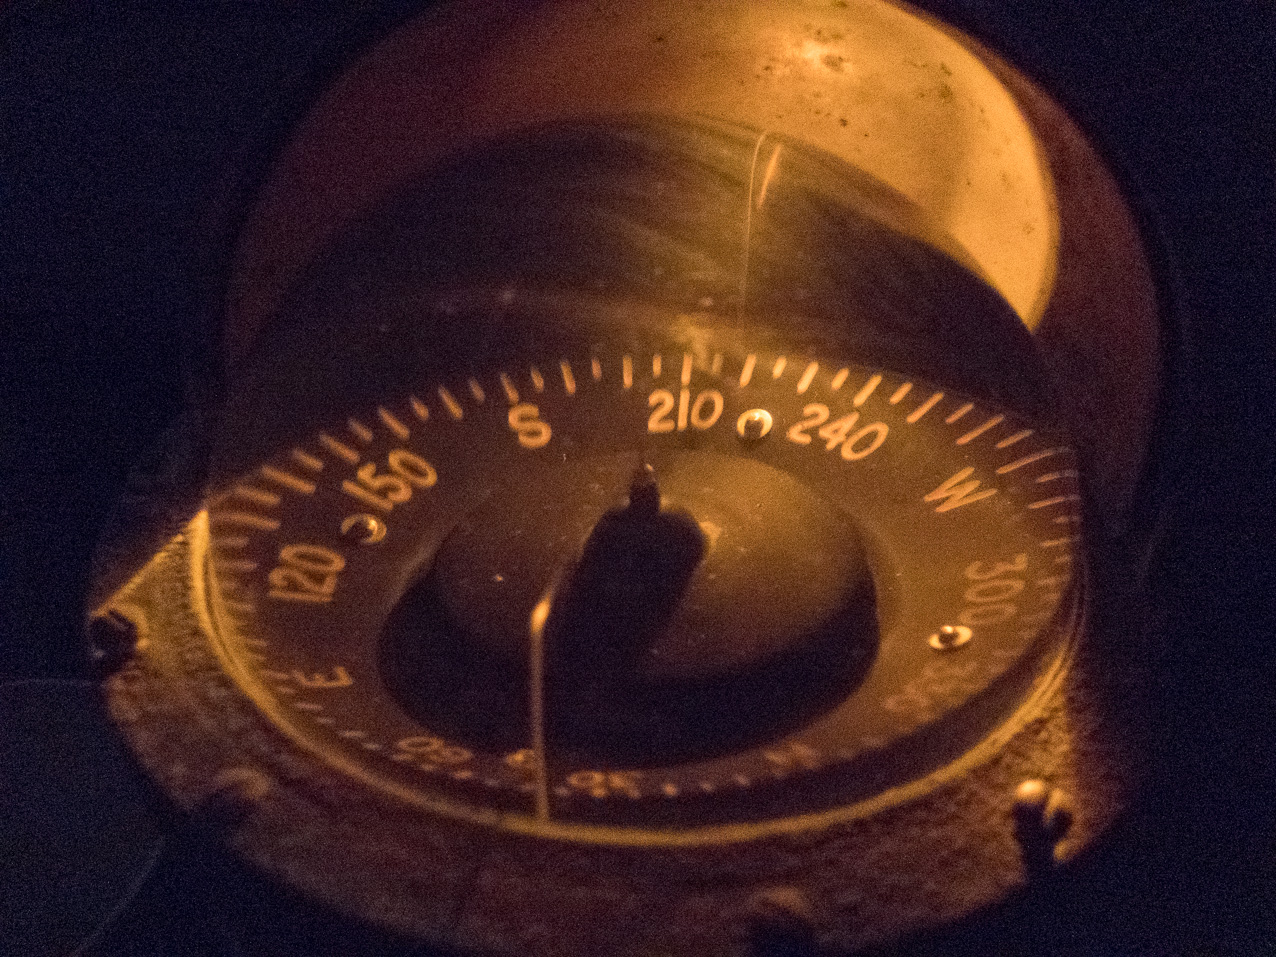 duncan-mckenzie-night-sailing-compass.jpg